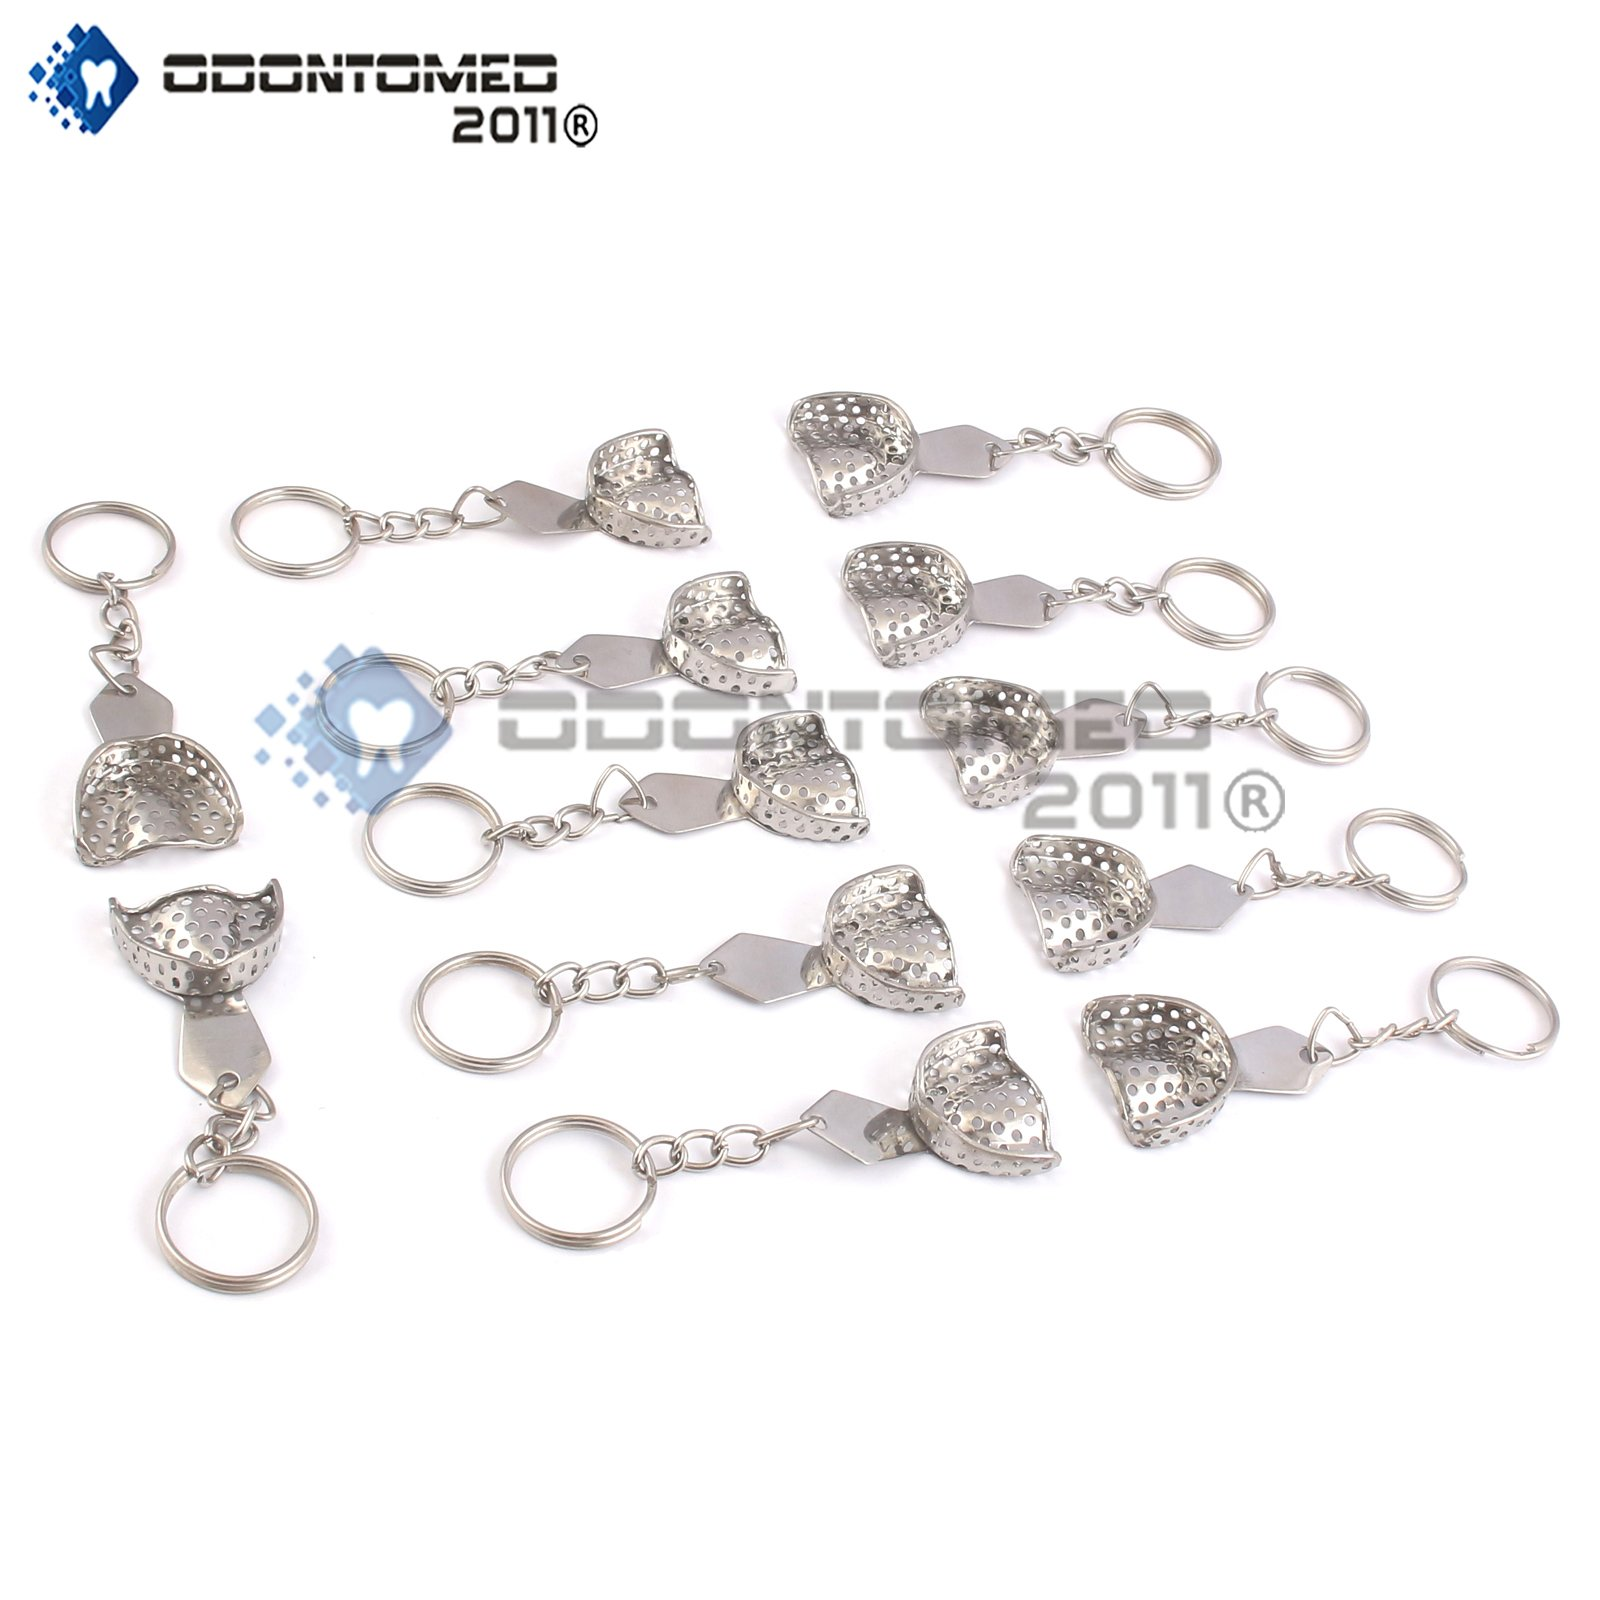 OdontoMed2011 Set Of 12 Pieces Dental Impression Tray Perforated Key Chain Stainless Steel ODM